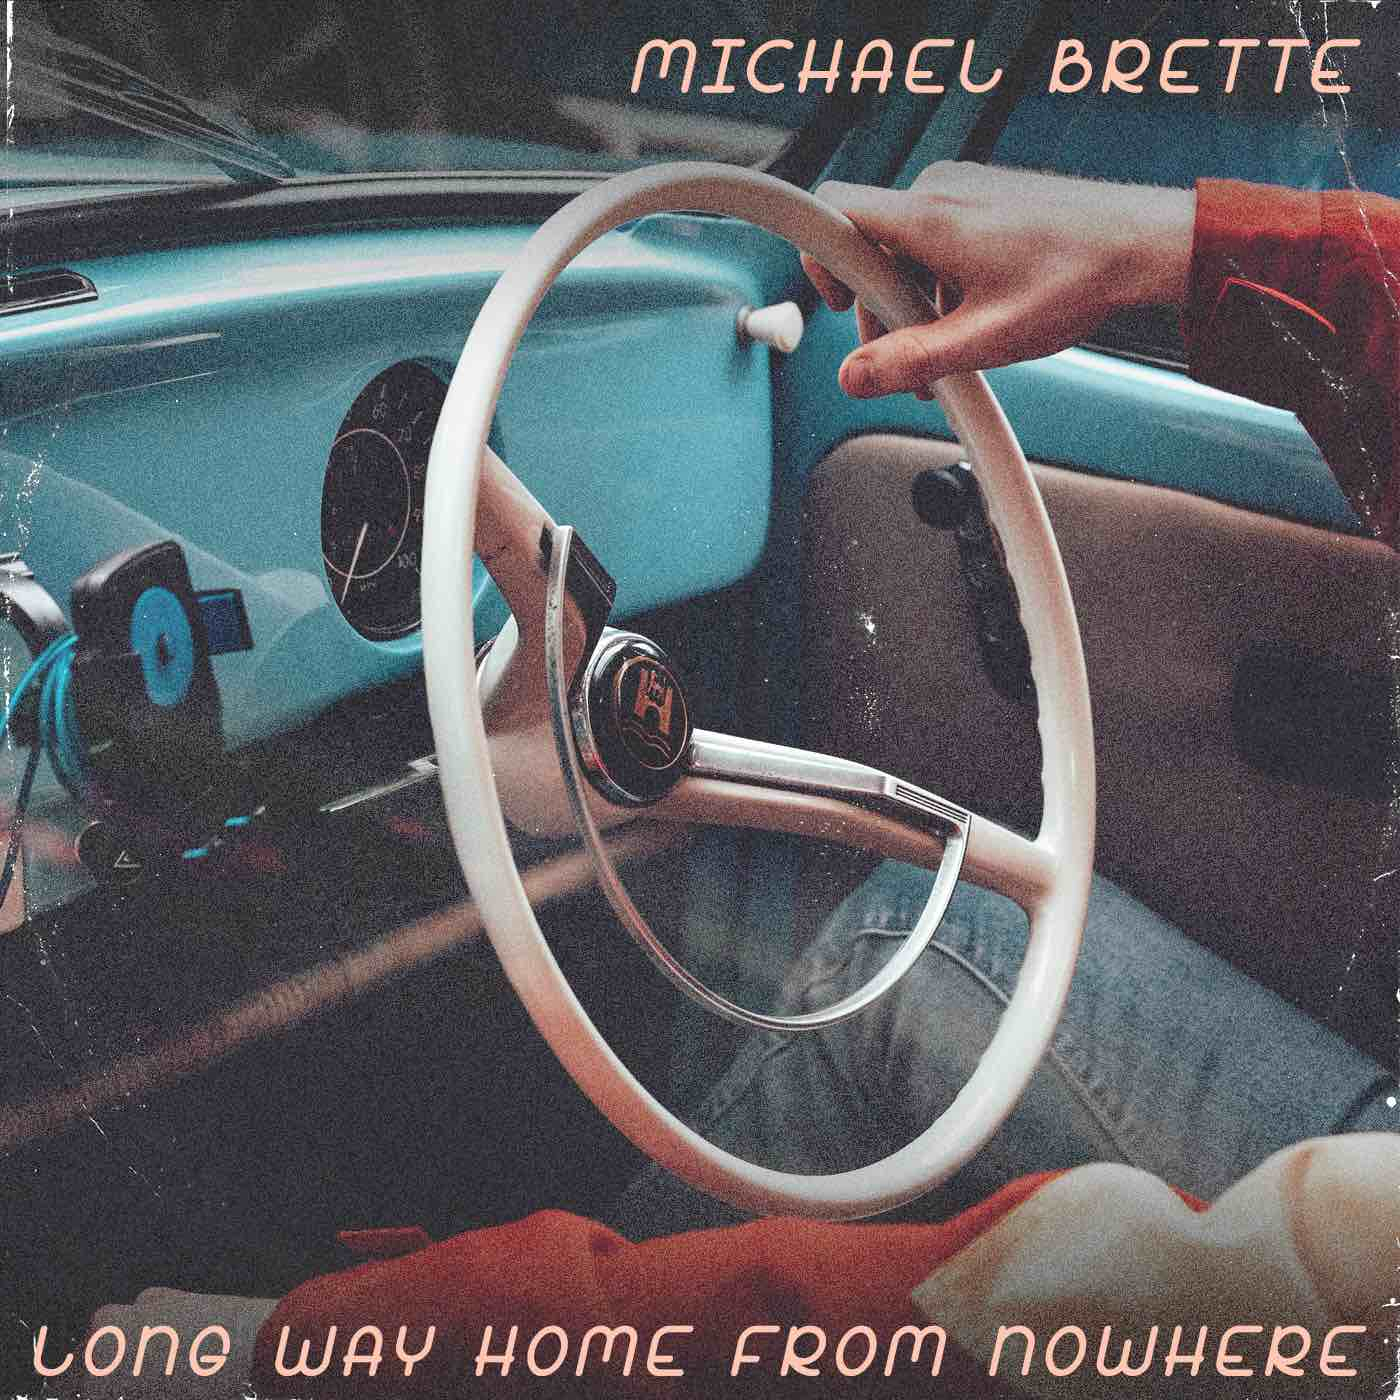 Long-Way-Home-From-Nowhere-Michael-Brette